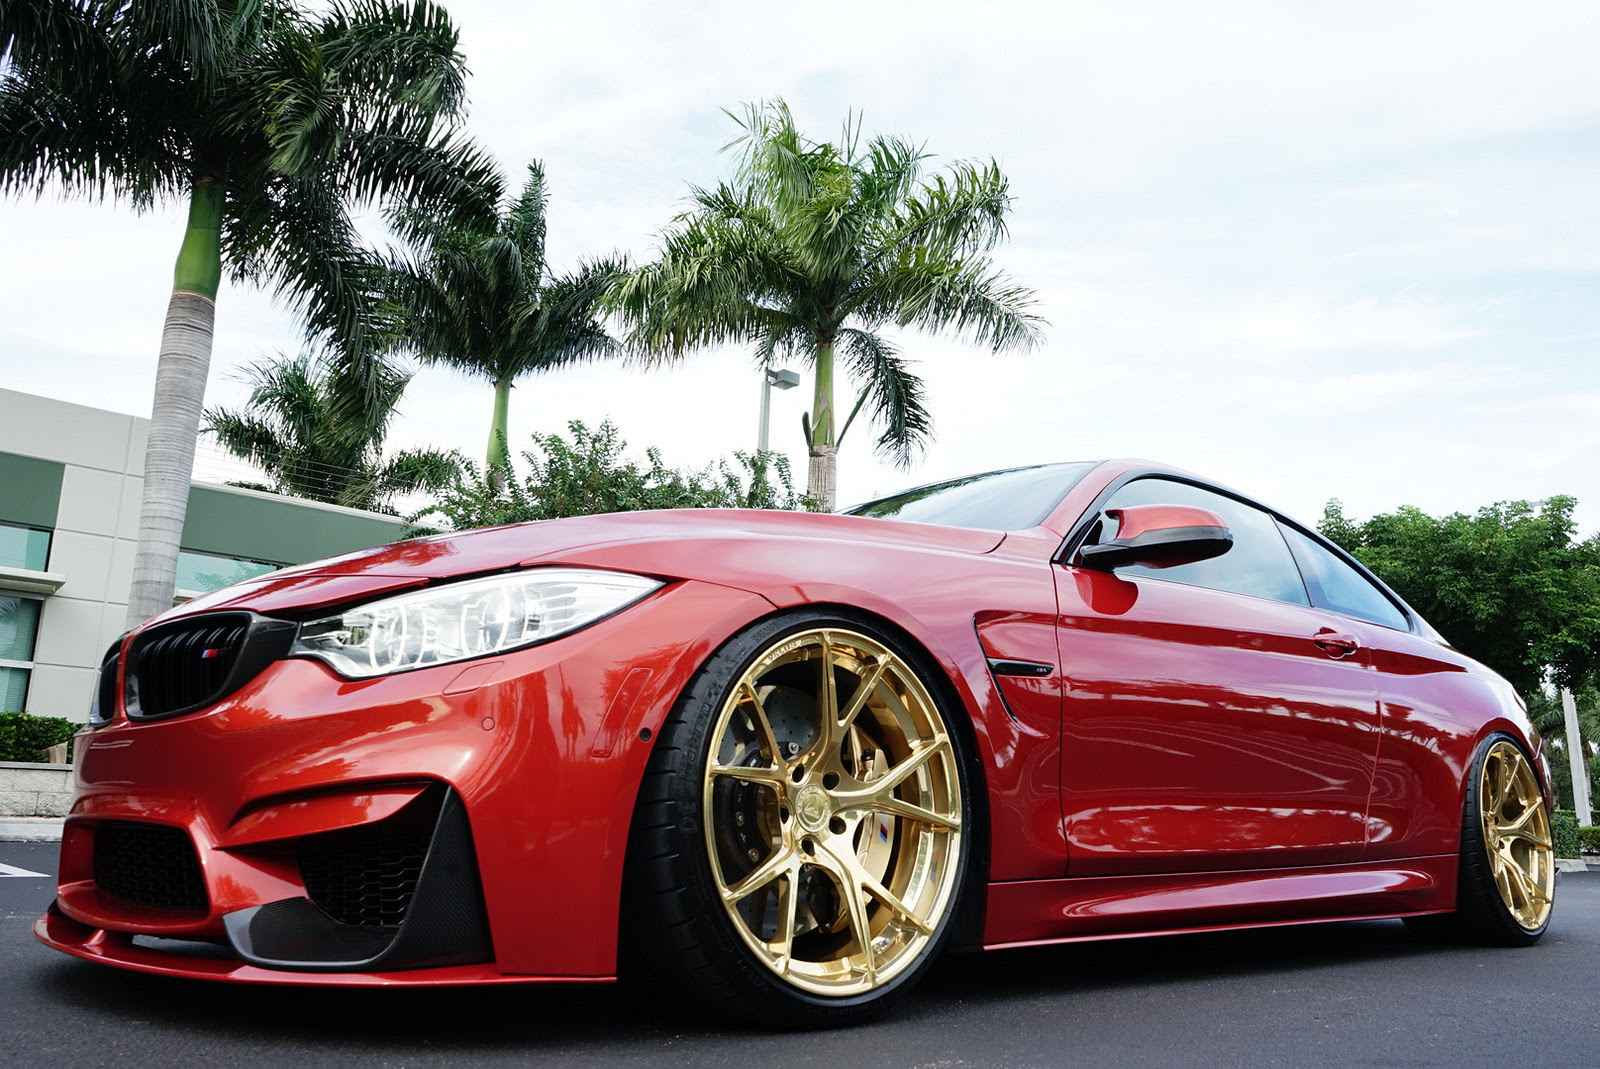 ... bmw f82 m4 on velos s3 1 pc forged wheels posted at 14 43h in bmw